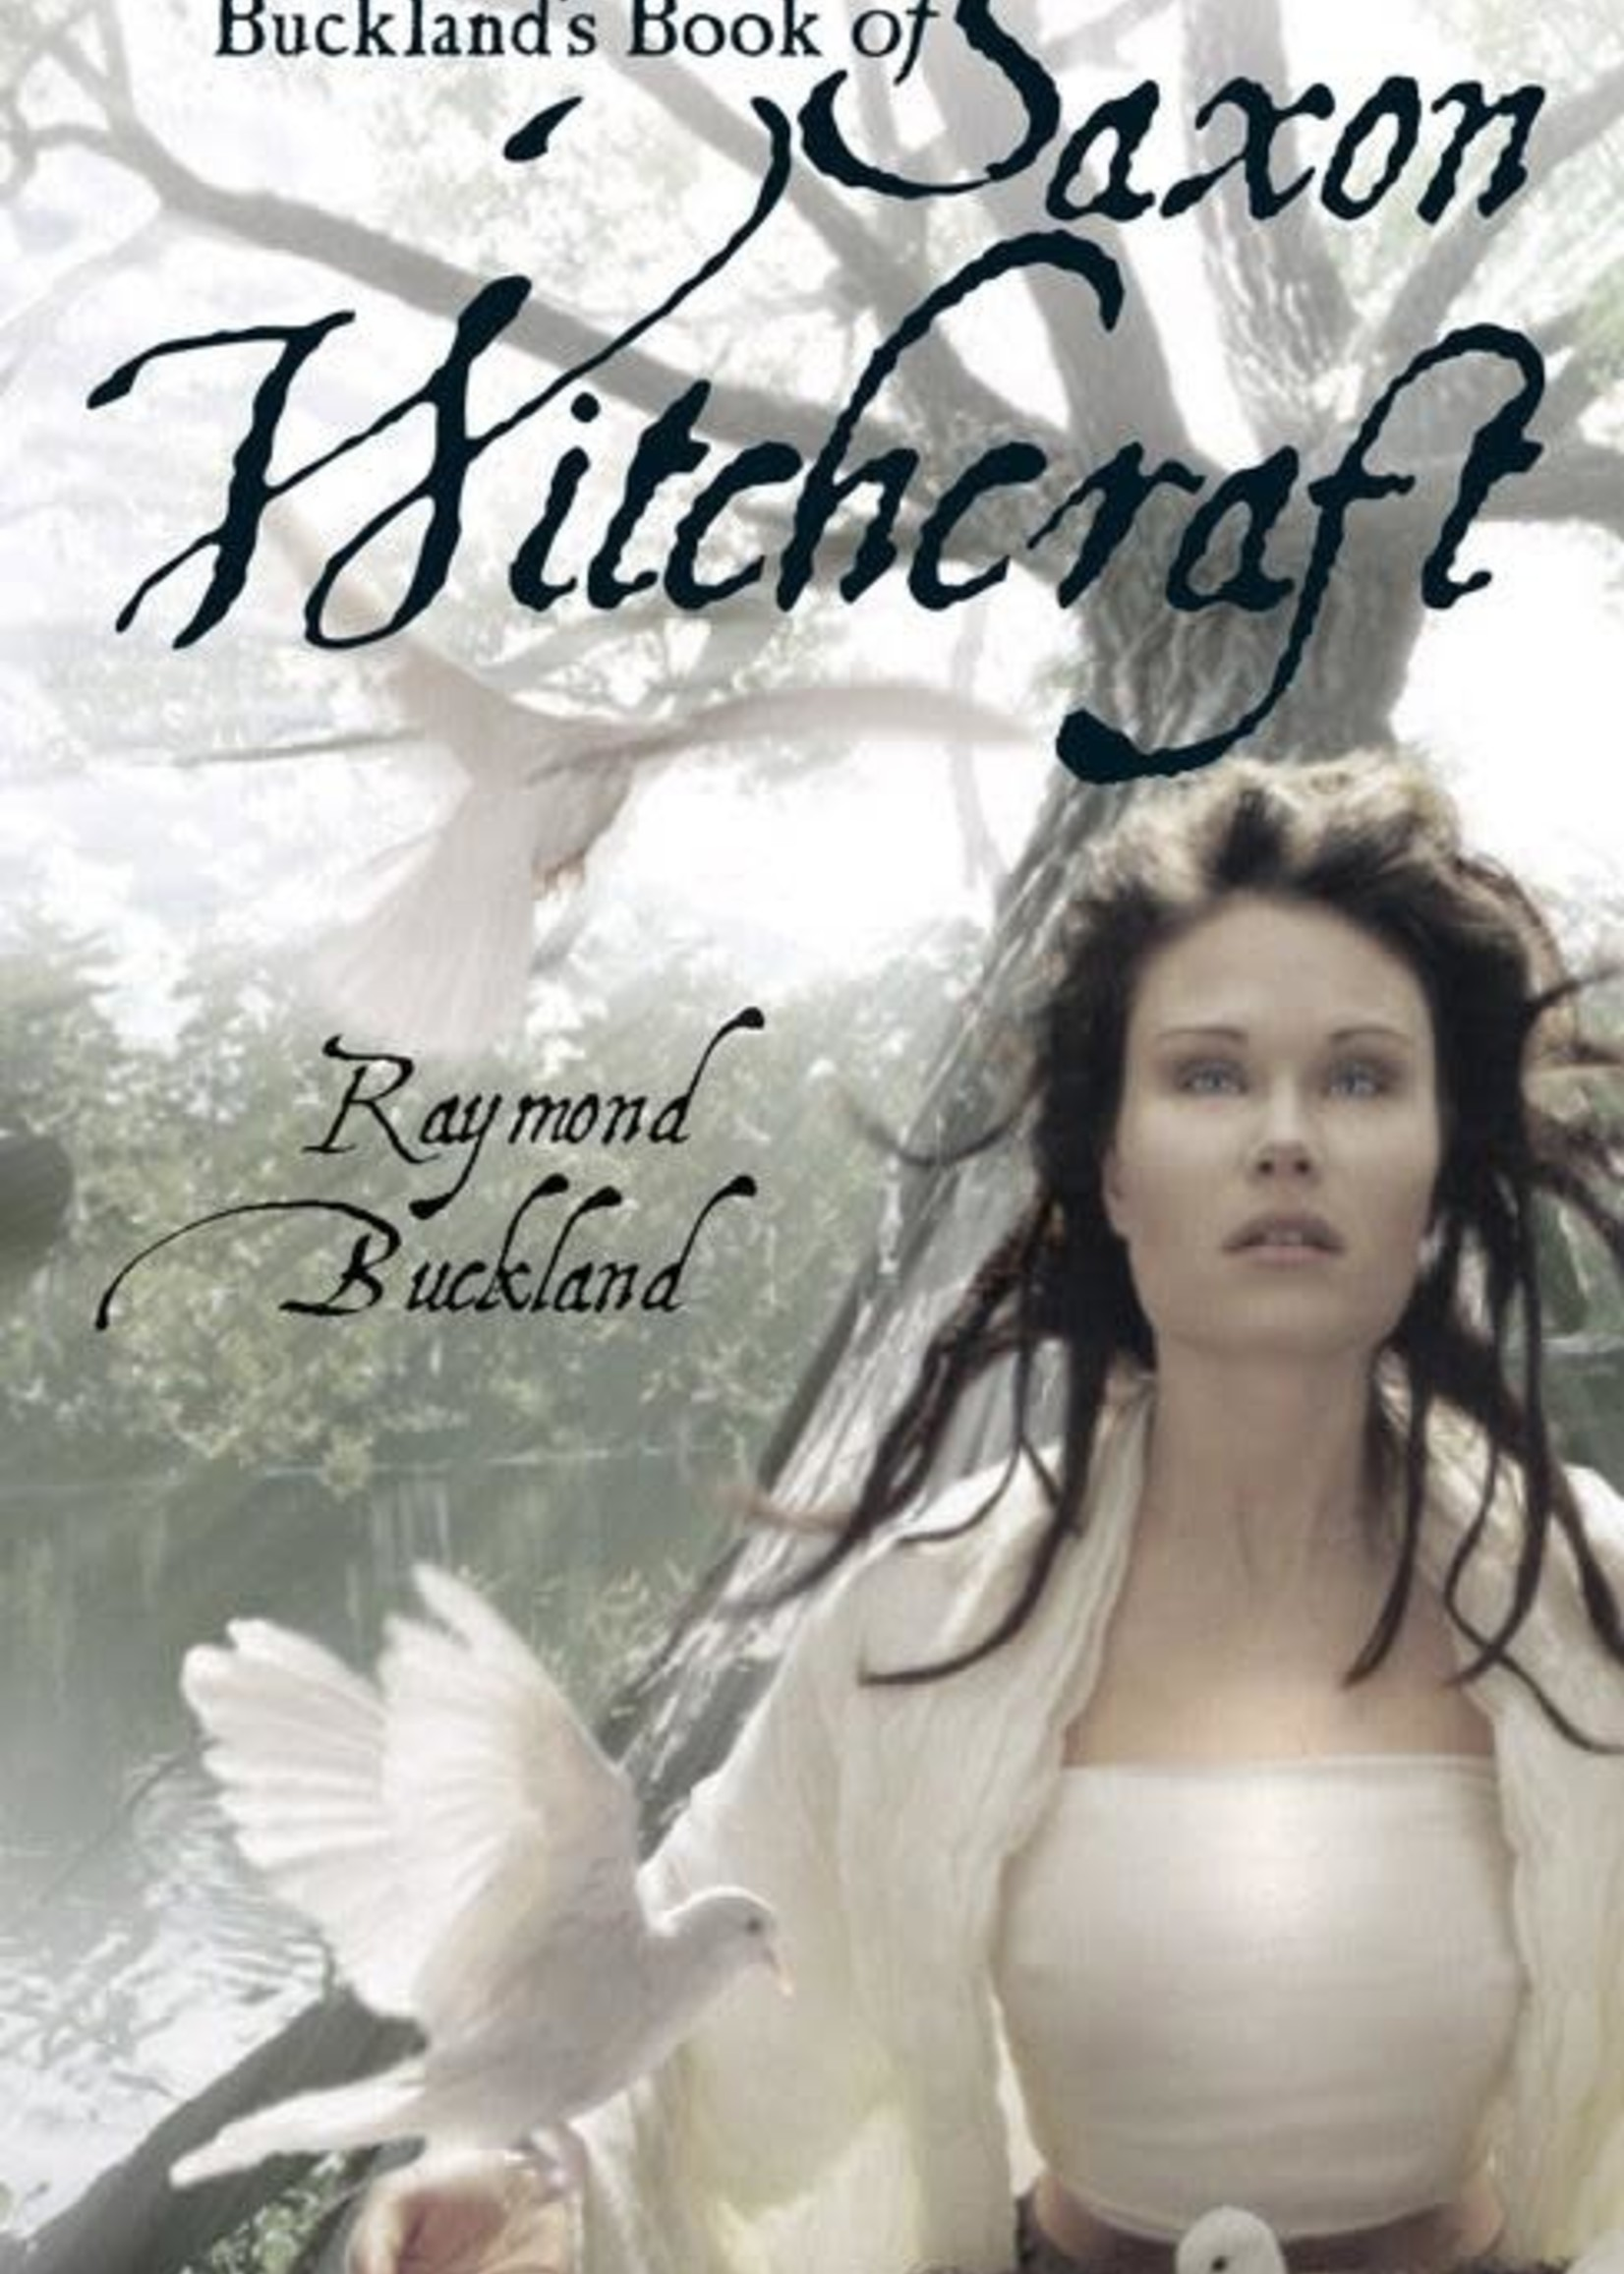 Buckland's Book of Saxon Witchcraft (Raymond Buckland)